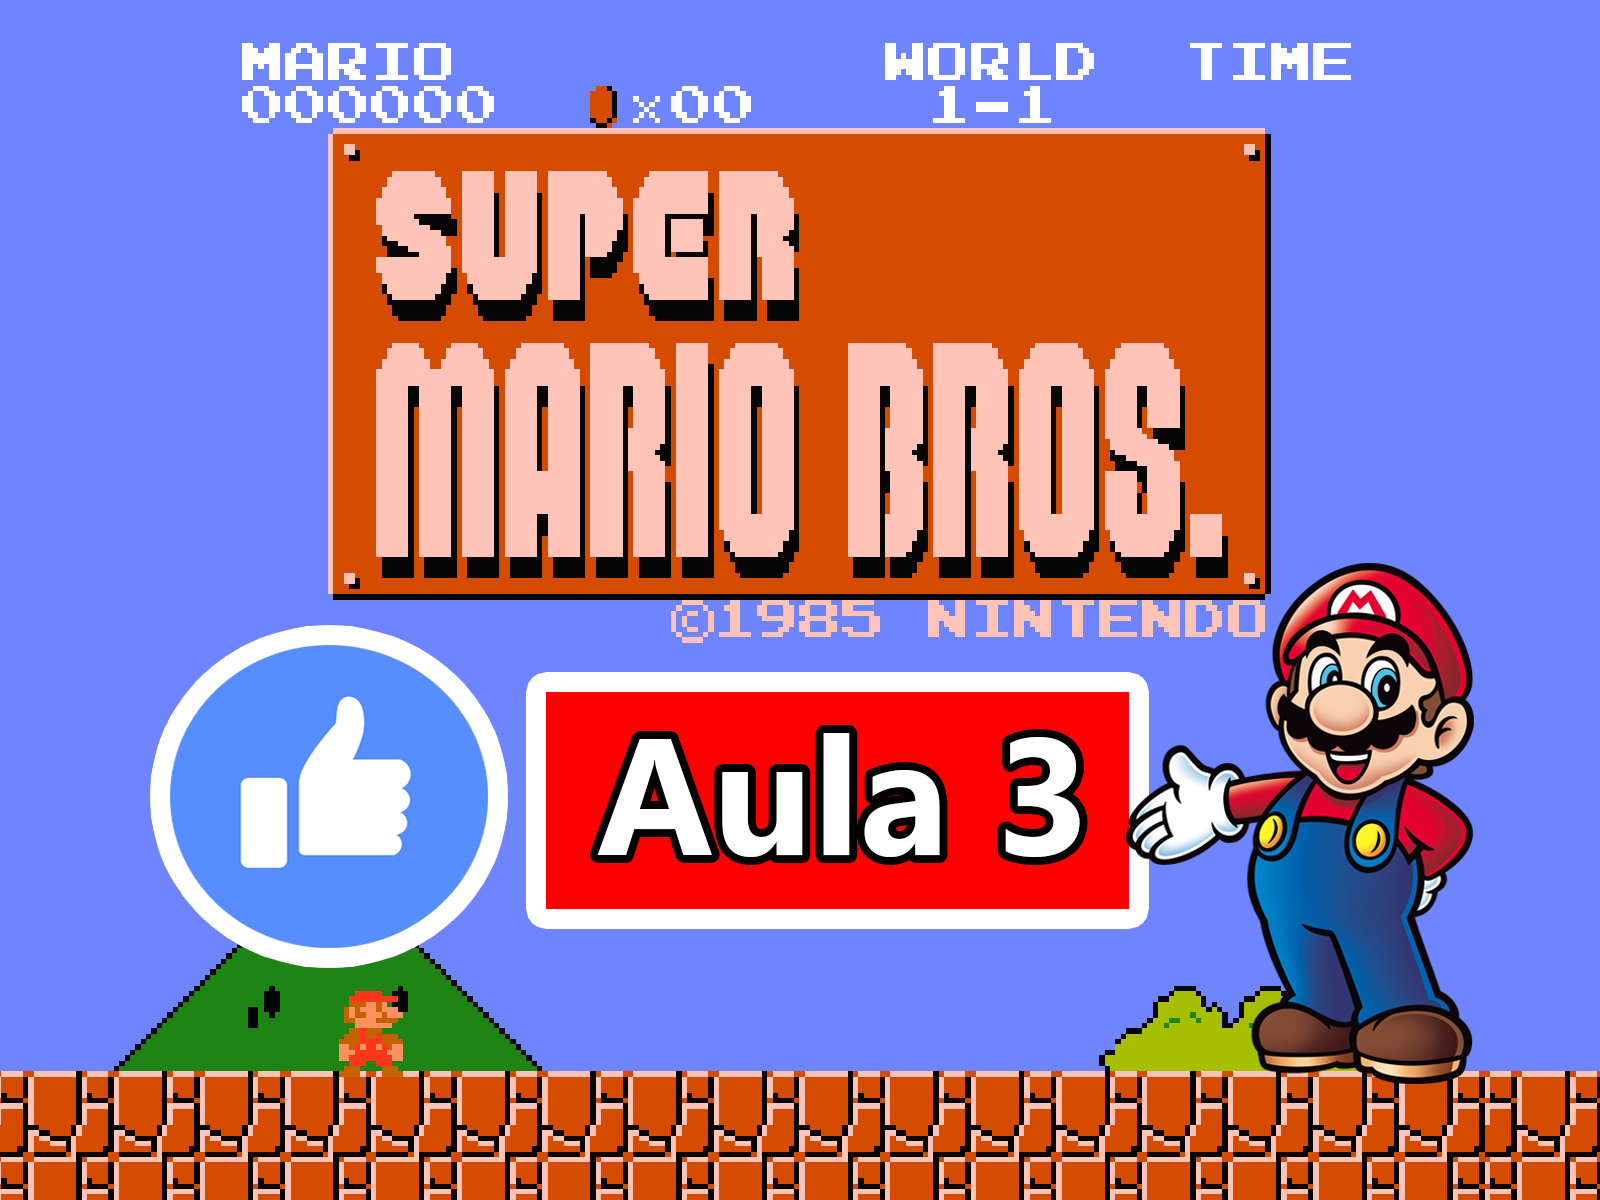 GameMaker – Criando o Jogo do Super Mario Bros #Aula3